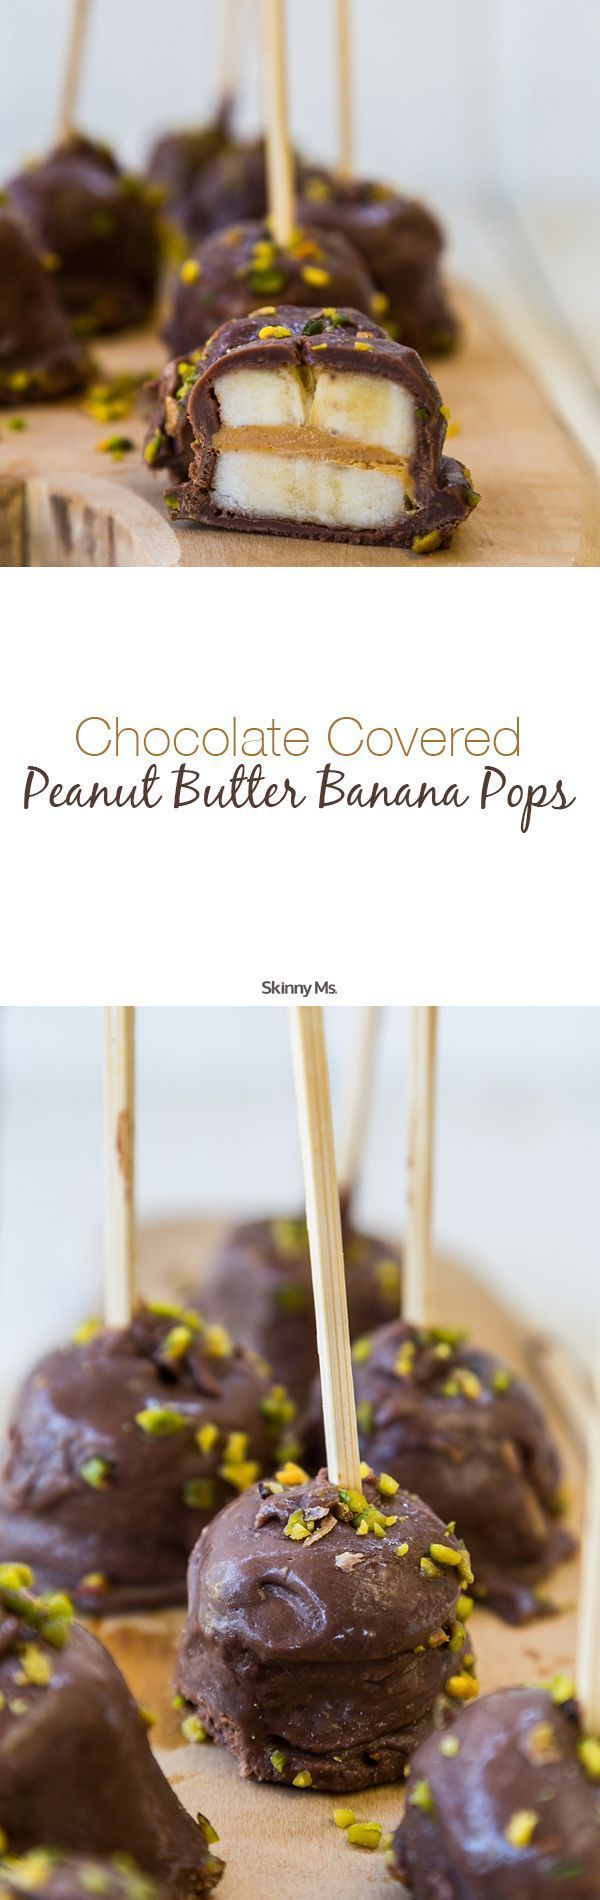 Chocolate Covered Peanut Butter Banana Pops - a must-have no bake recipe for summer! #chocolatecoveredbananapops #chocolate #banana